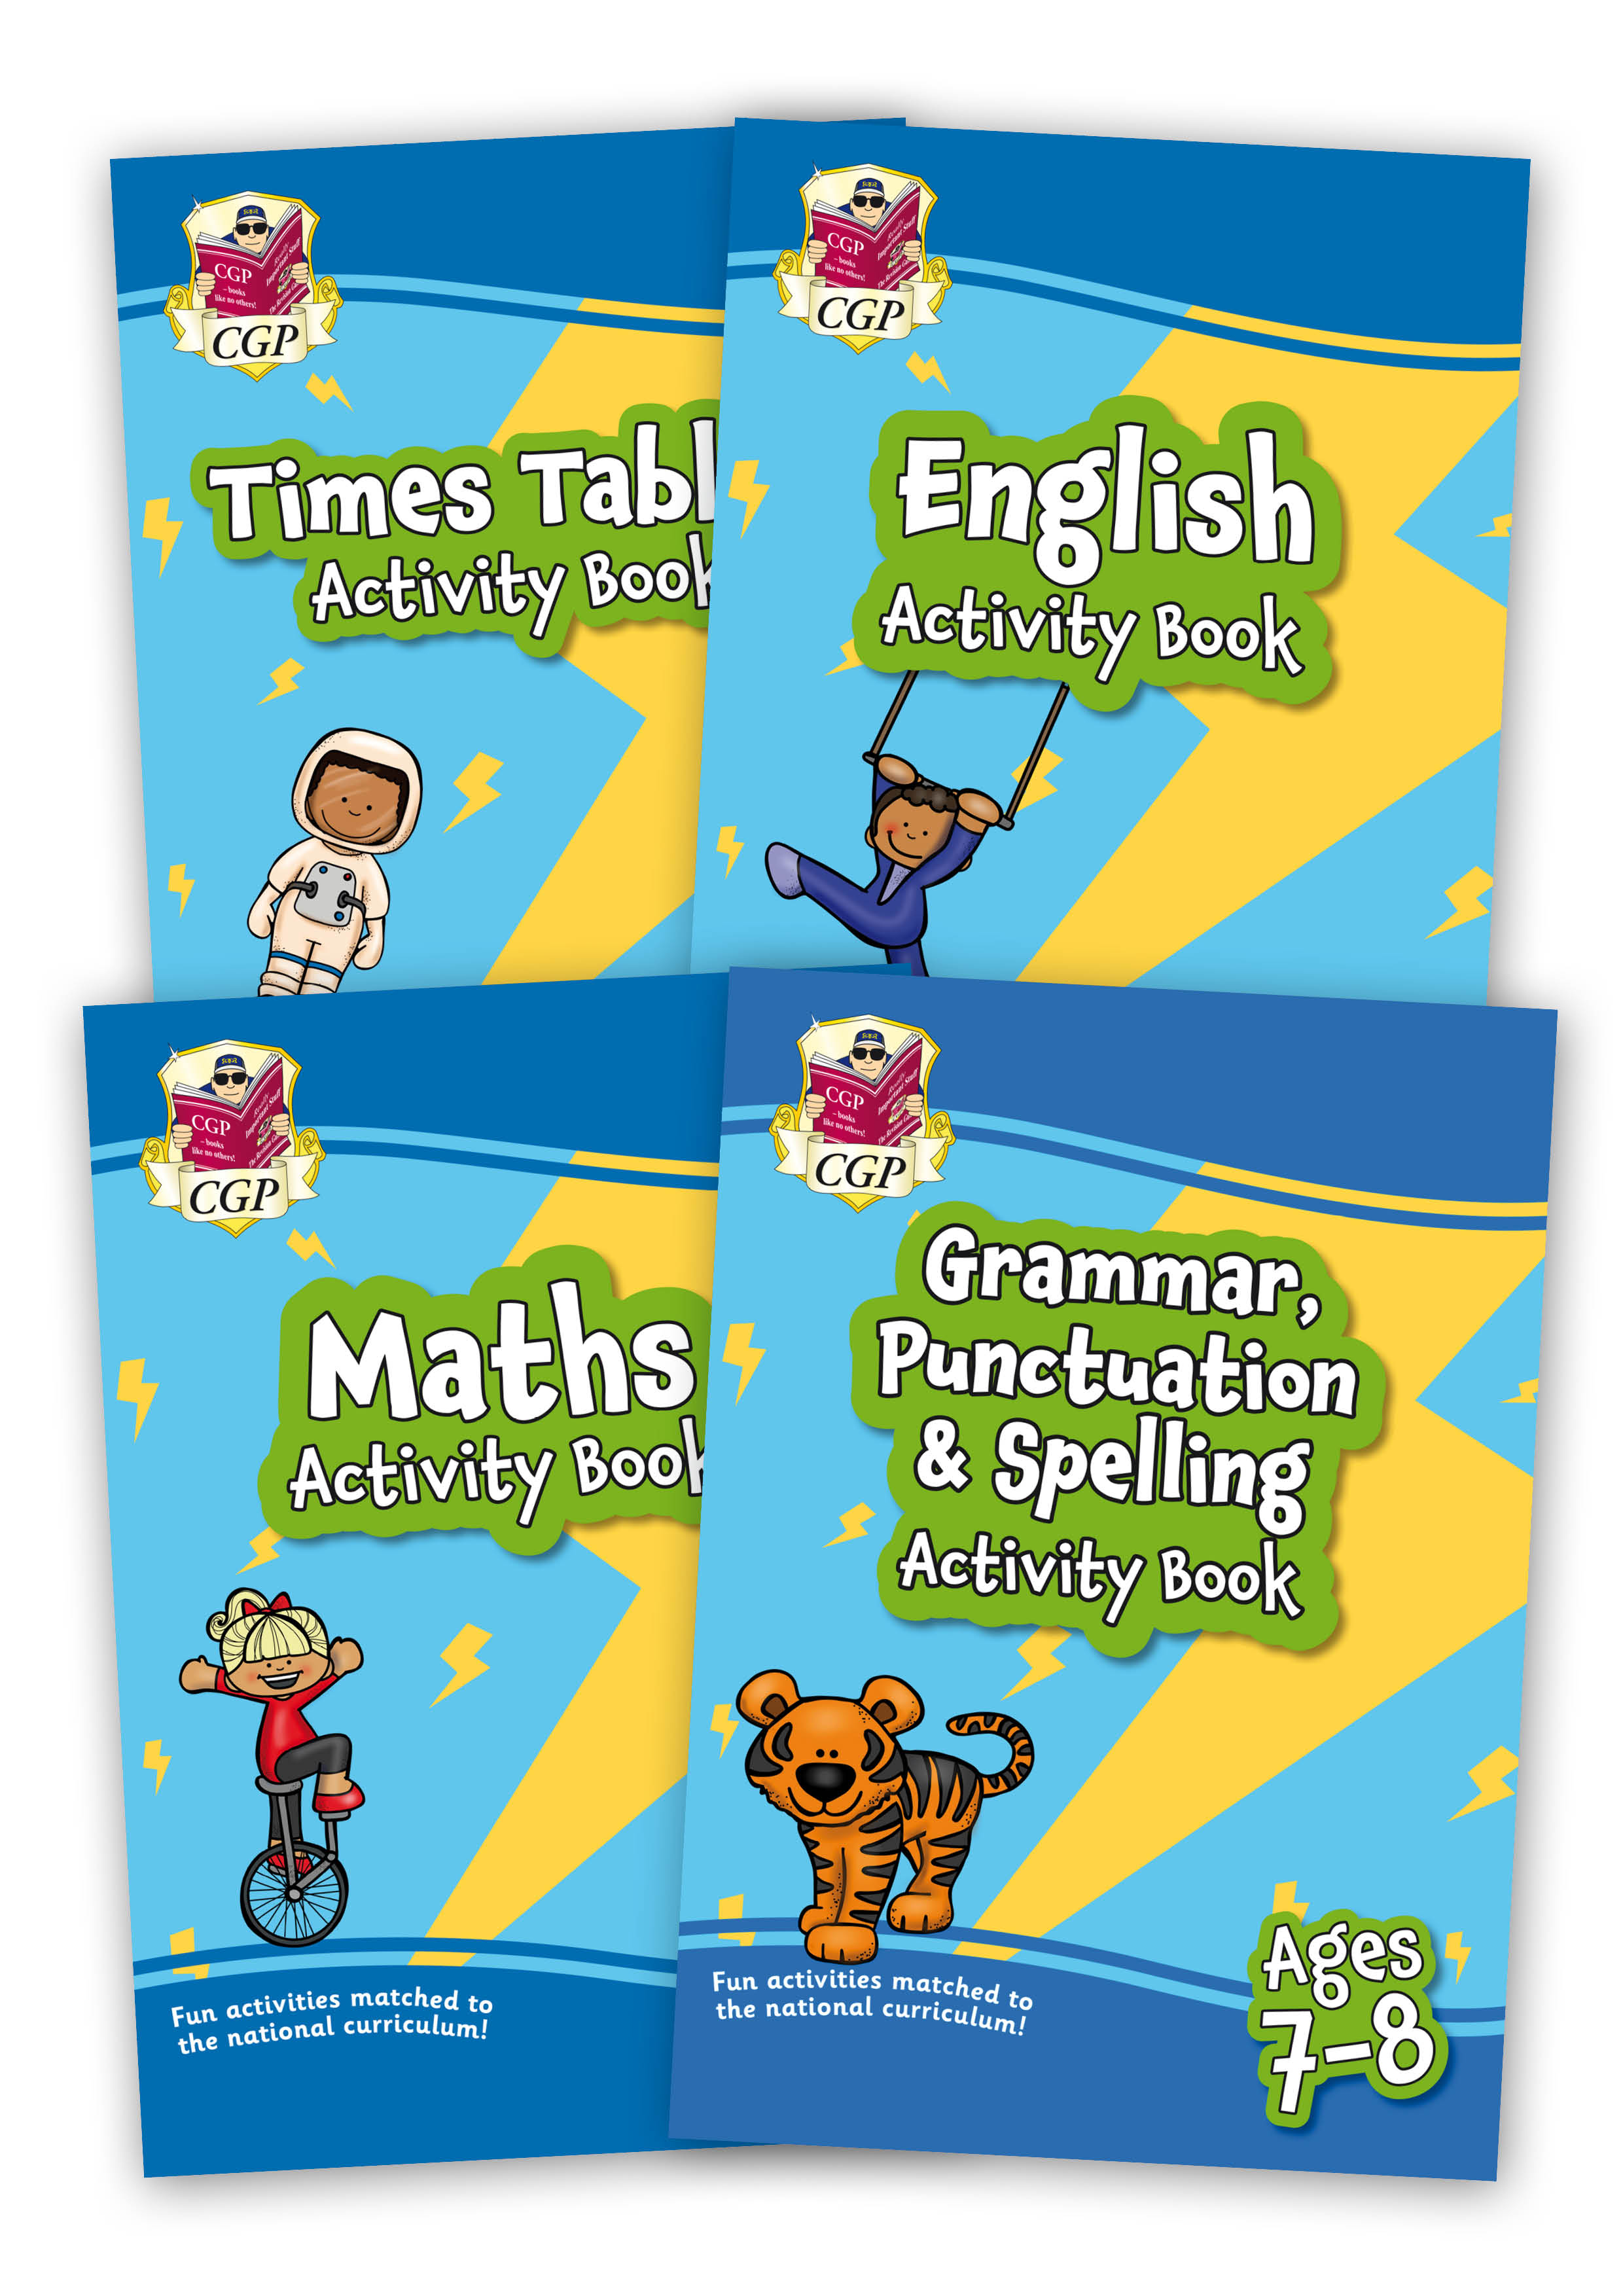 EMPF3B21 - New Home Learning Activity Books - 4-book bundle: KS2 Ages 7-8